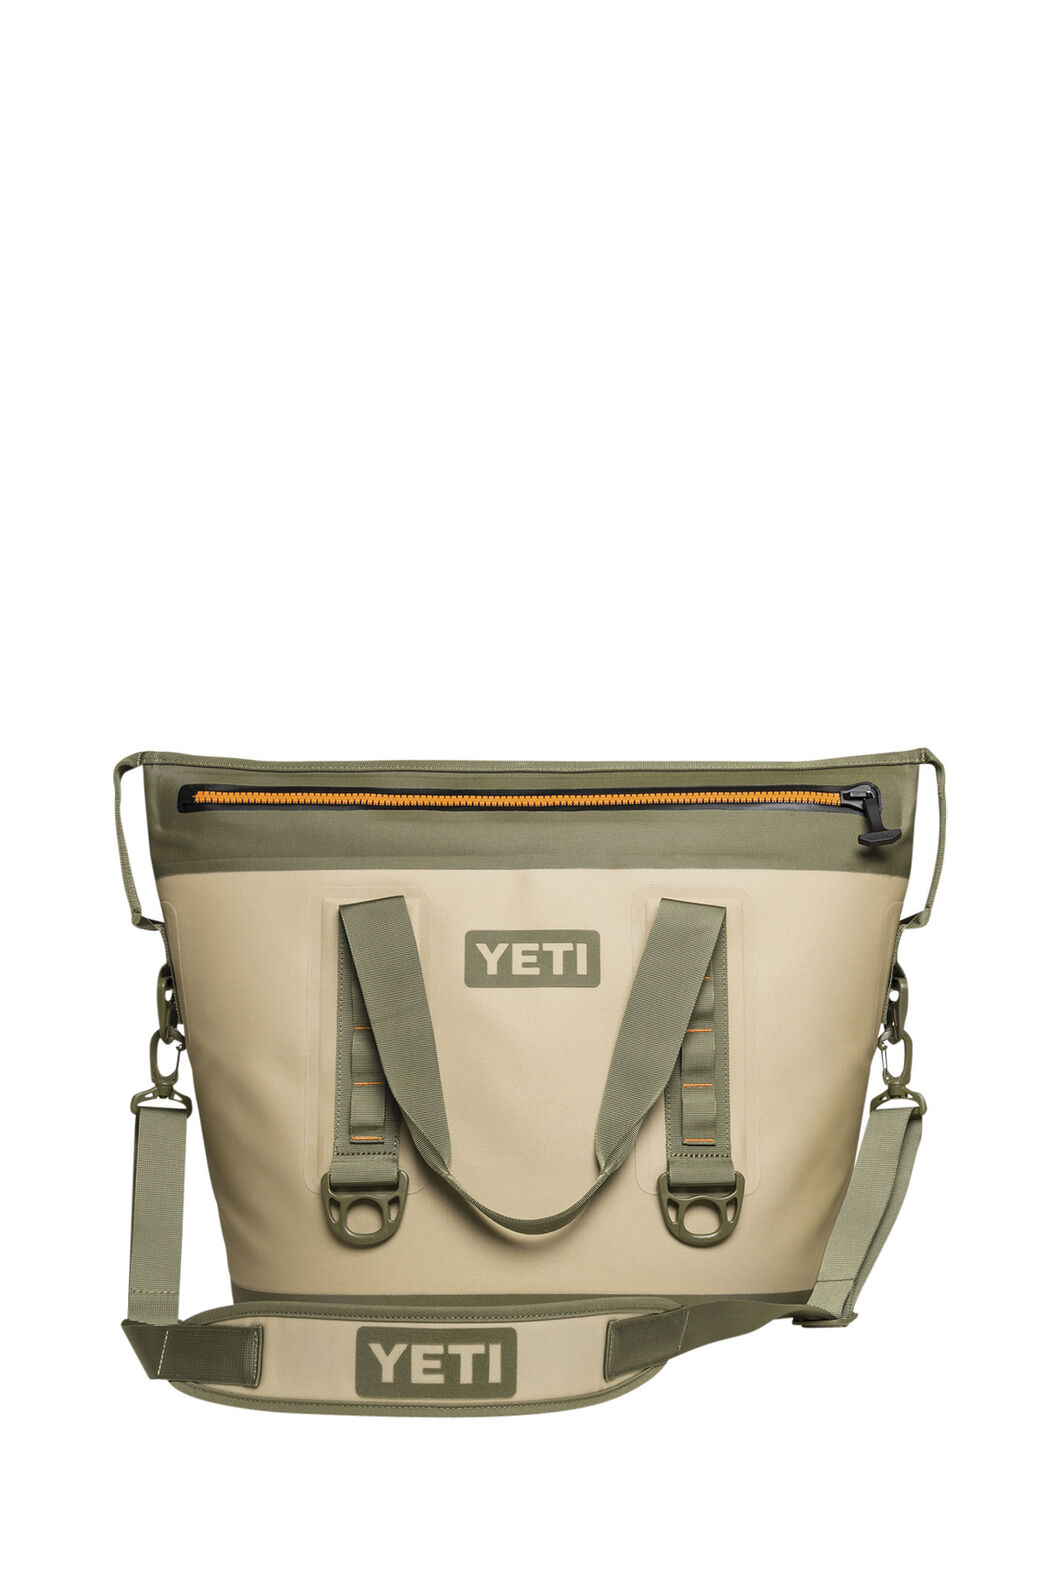 Yeti Hopper Two 30 Soft Cooler, Tan, hi-res